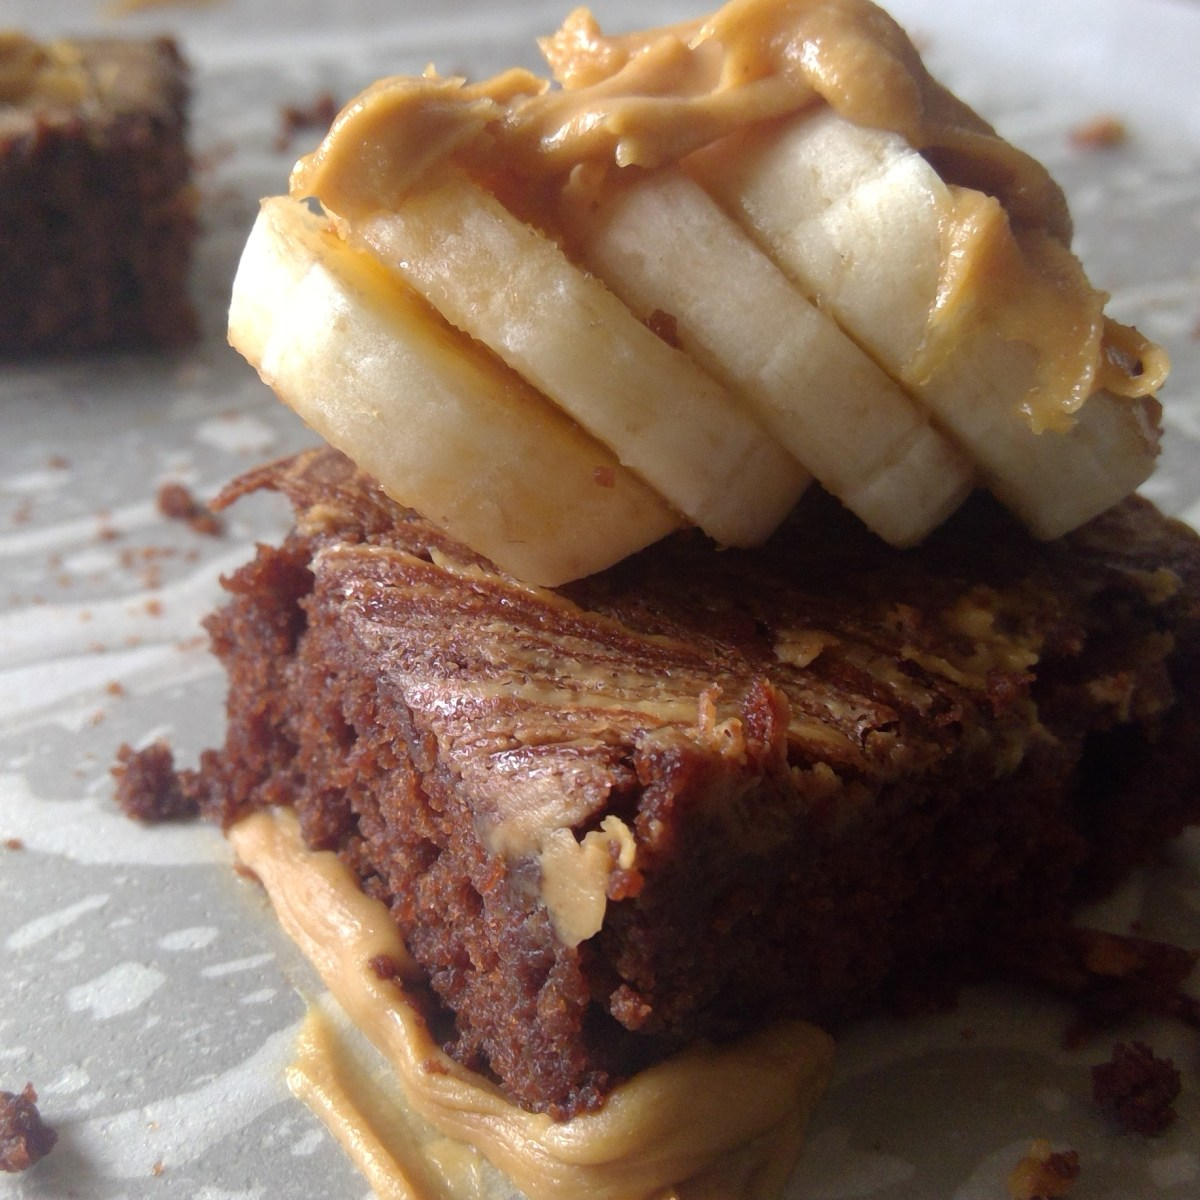 https://parveenskitchen.com/banana-peanut-butter-brownies